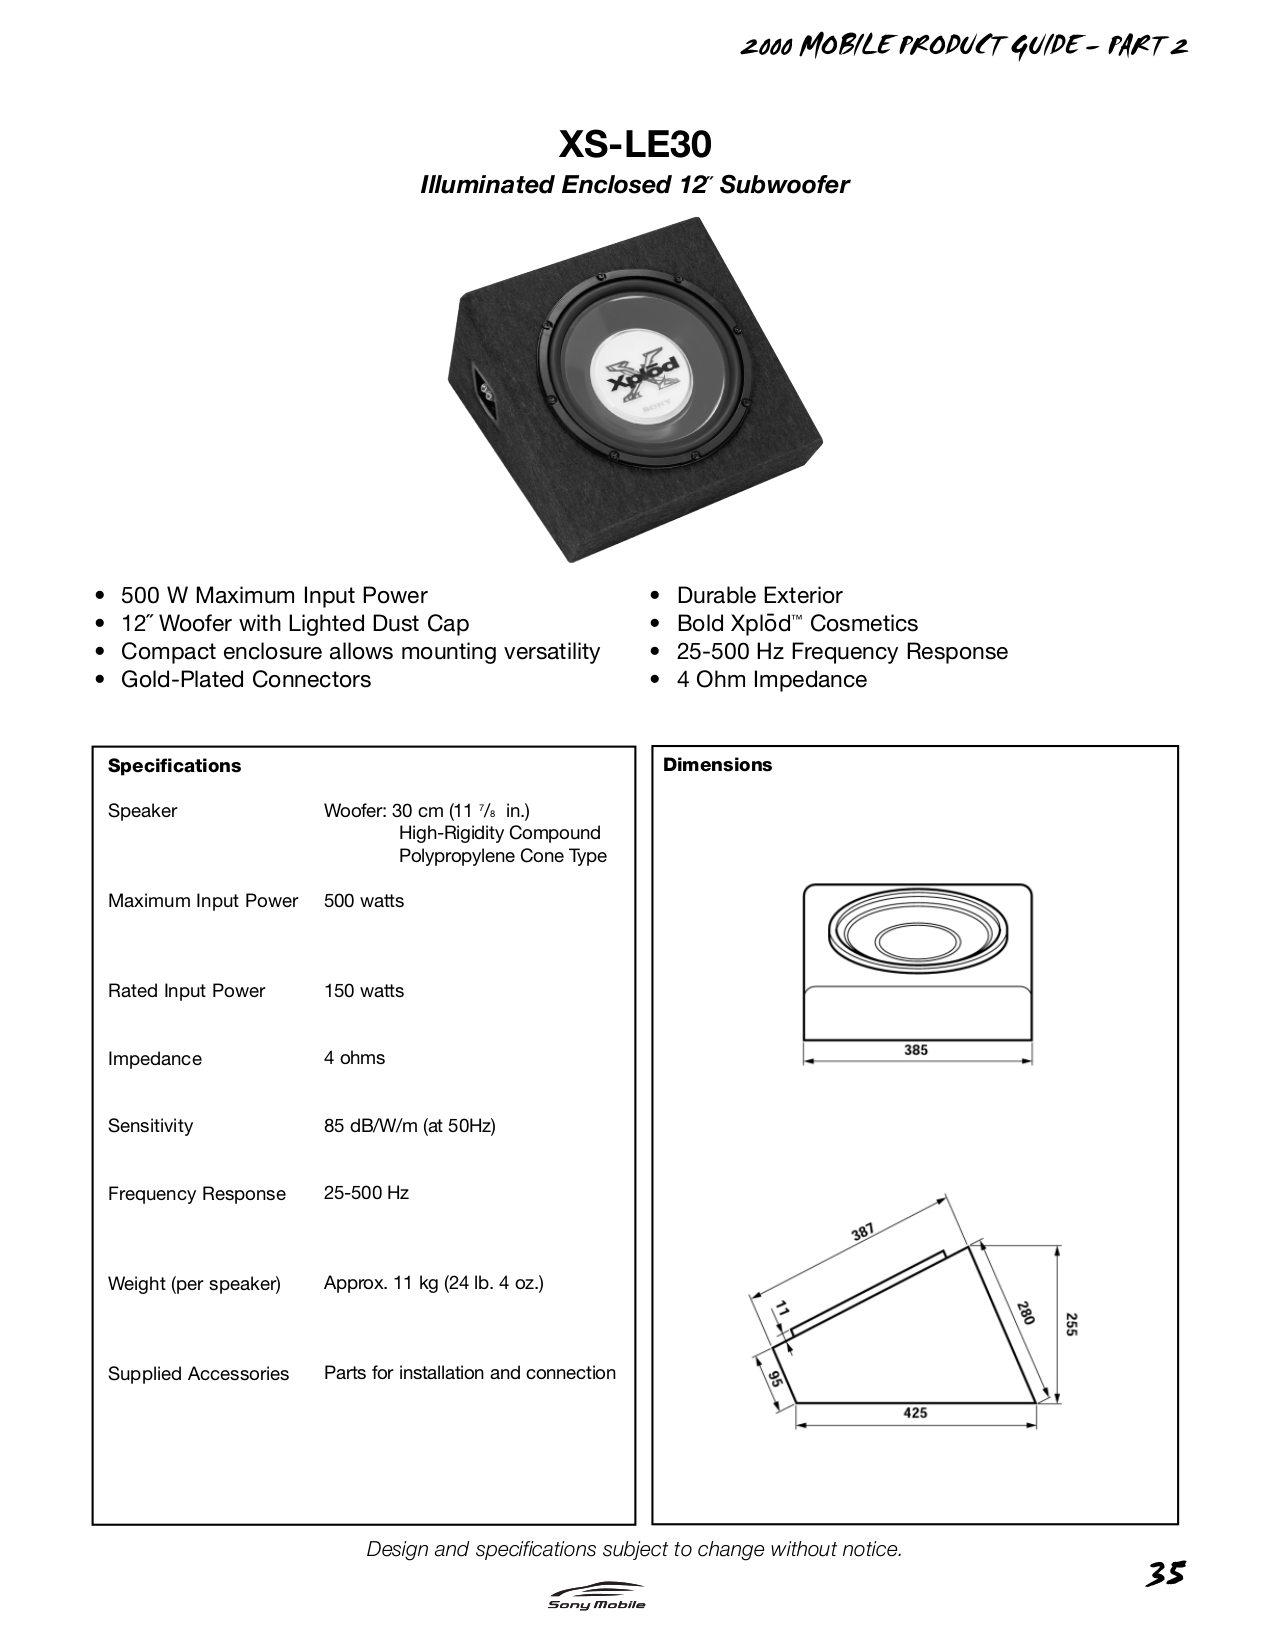 pdf for Sony Subwoofer XS-LE30 manual